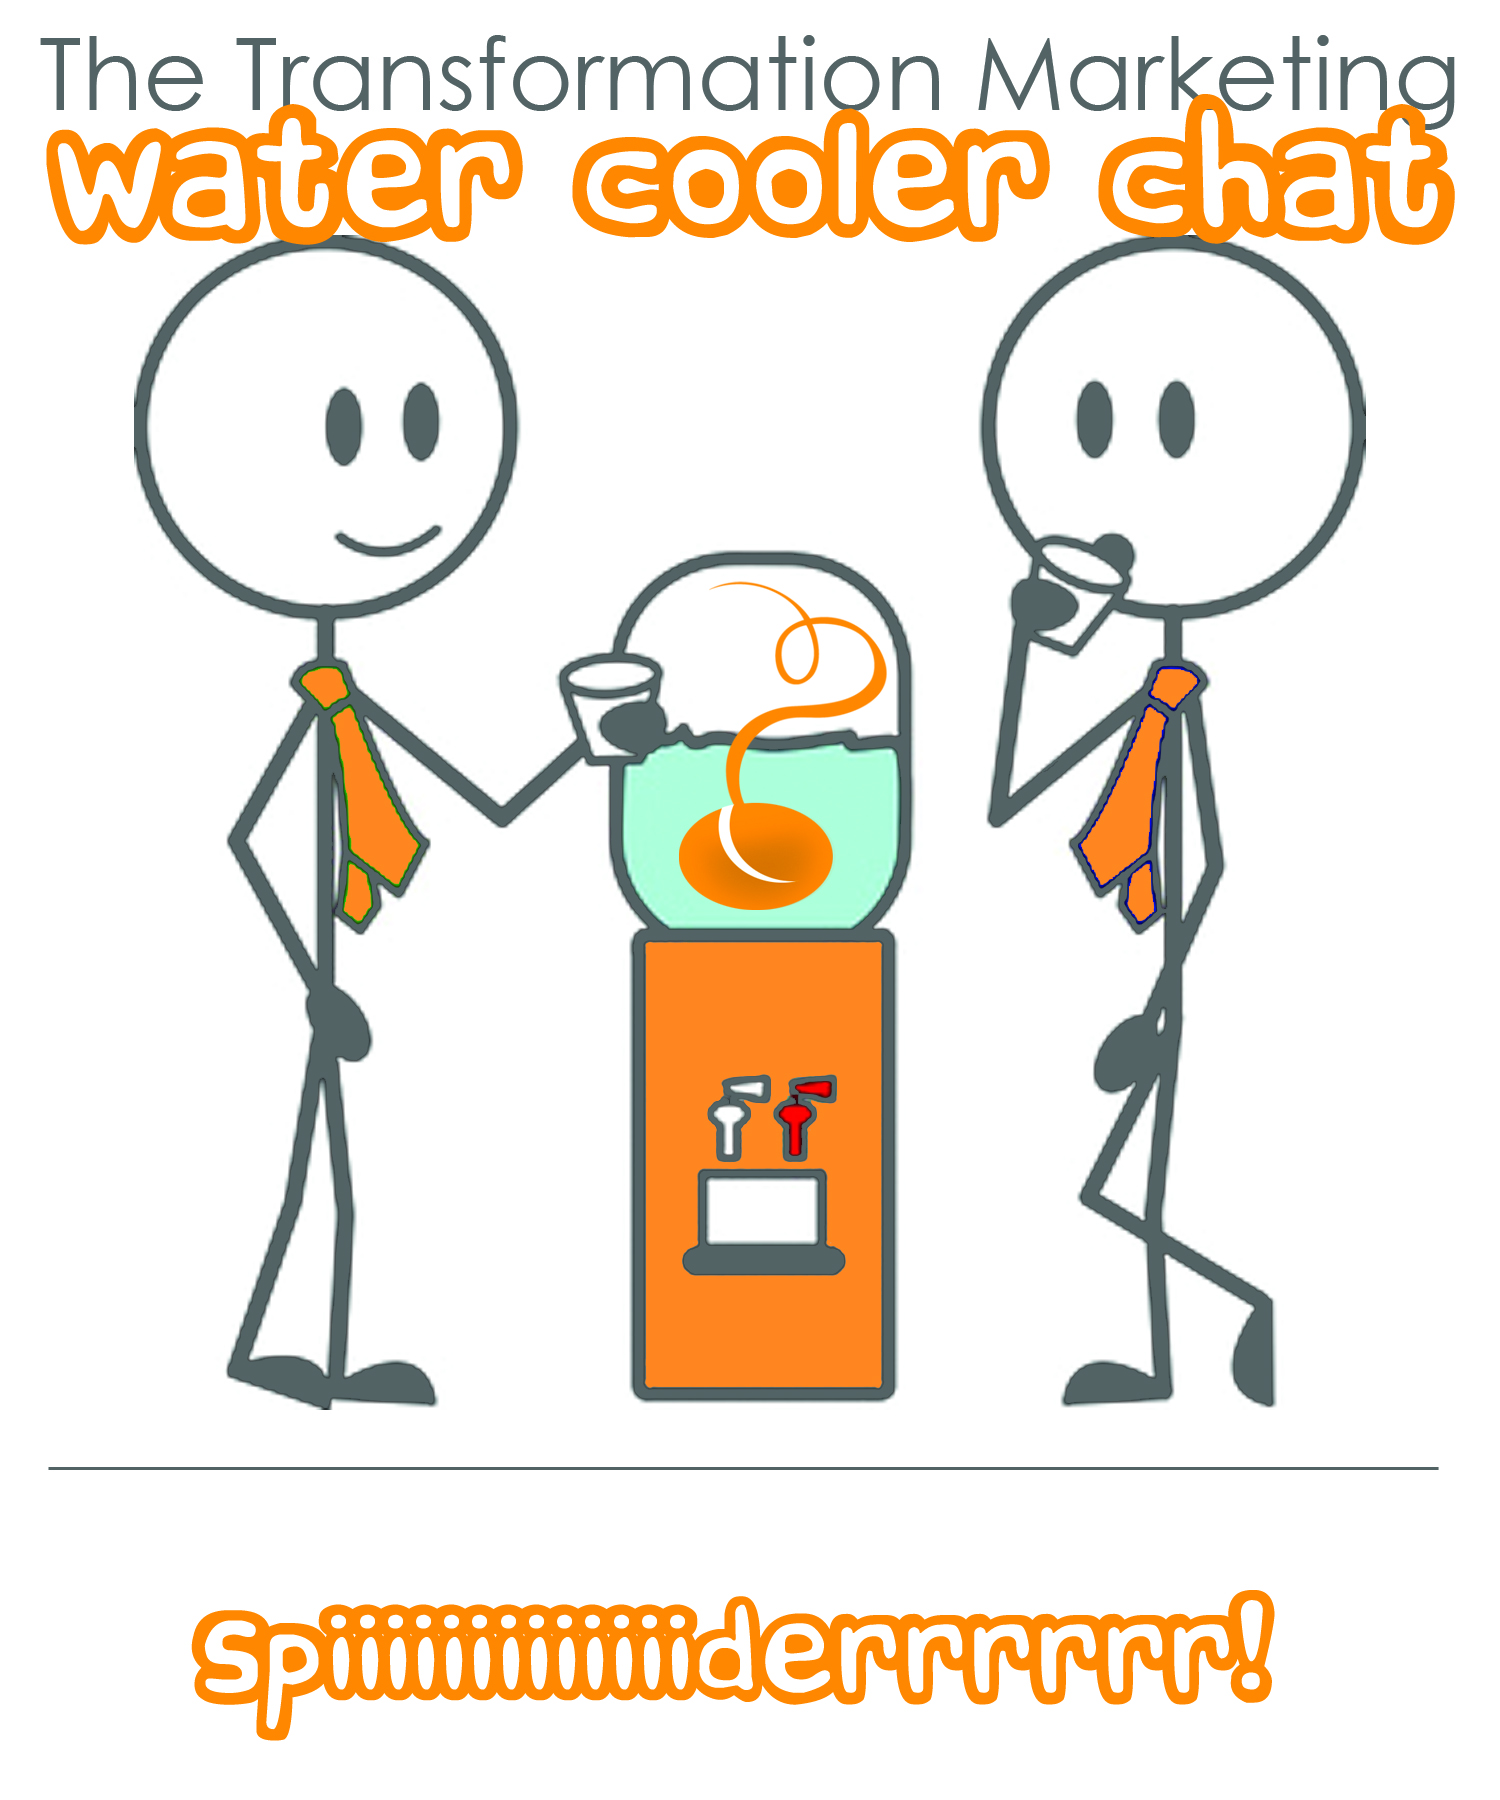 The Transformation Marketing Water Cooler Chat - spider!